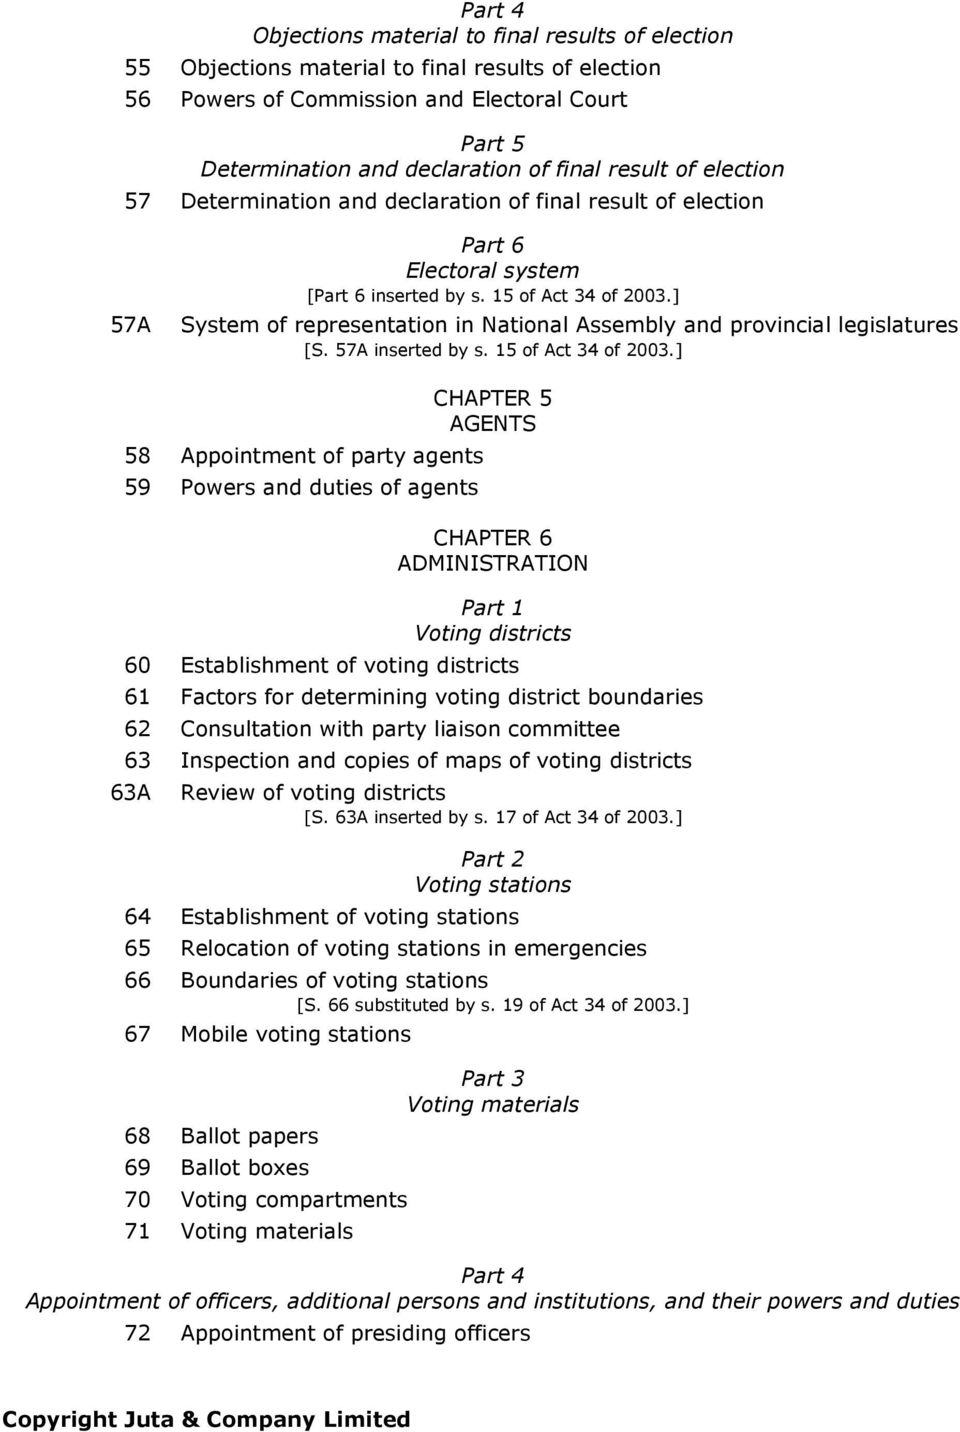 ] 57A System of representation in National Assembly and provincial legislatures [S. 57A inserted by s. 15 of Act 34 of 2003.